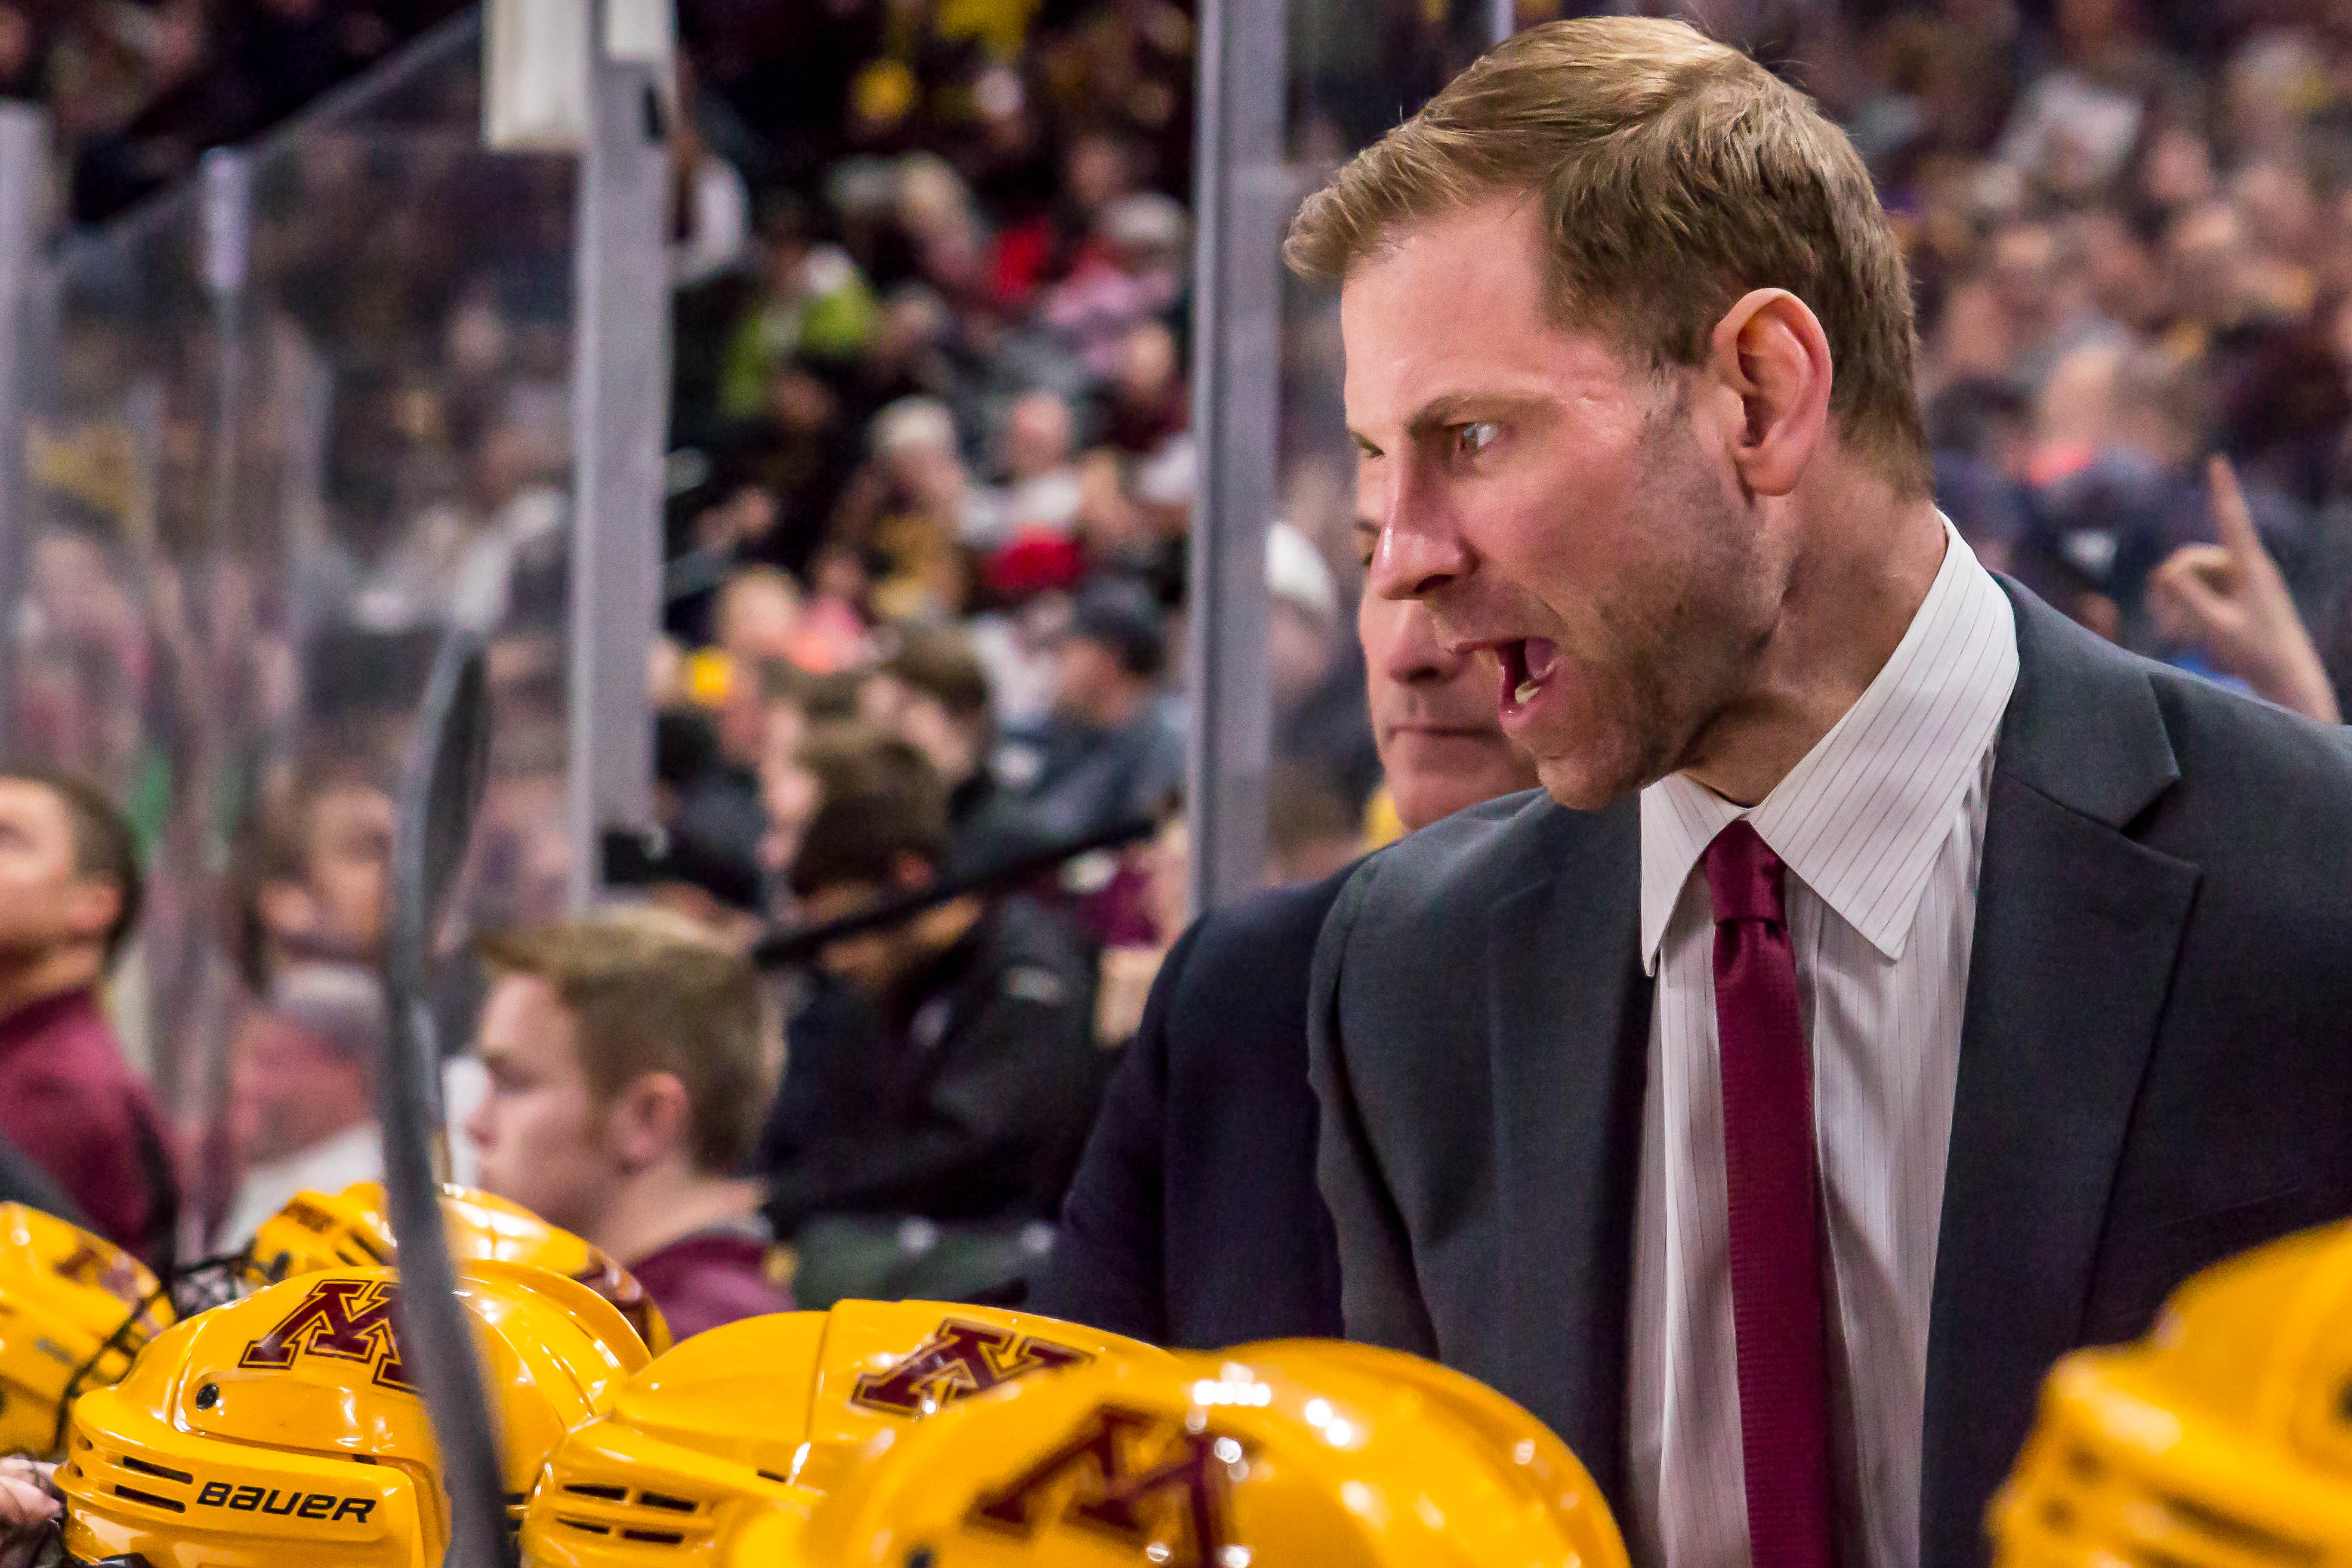 New Northern Michigan University head coach Grant Potulny instructs his players during Minnesota's 3-2 loss to Minnesota Duluth in the North Star College Cup on Jan. 27, 2017 at Xcel Energy Center. (MHM Photo / Jonny Watkins)